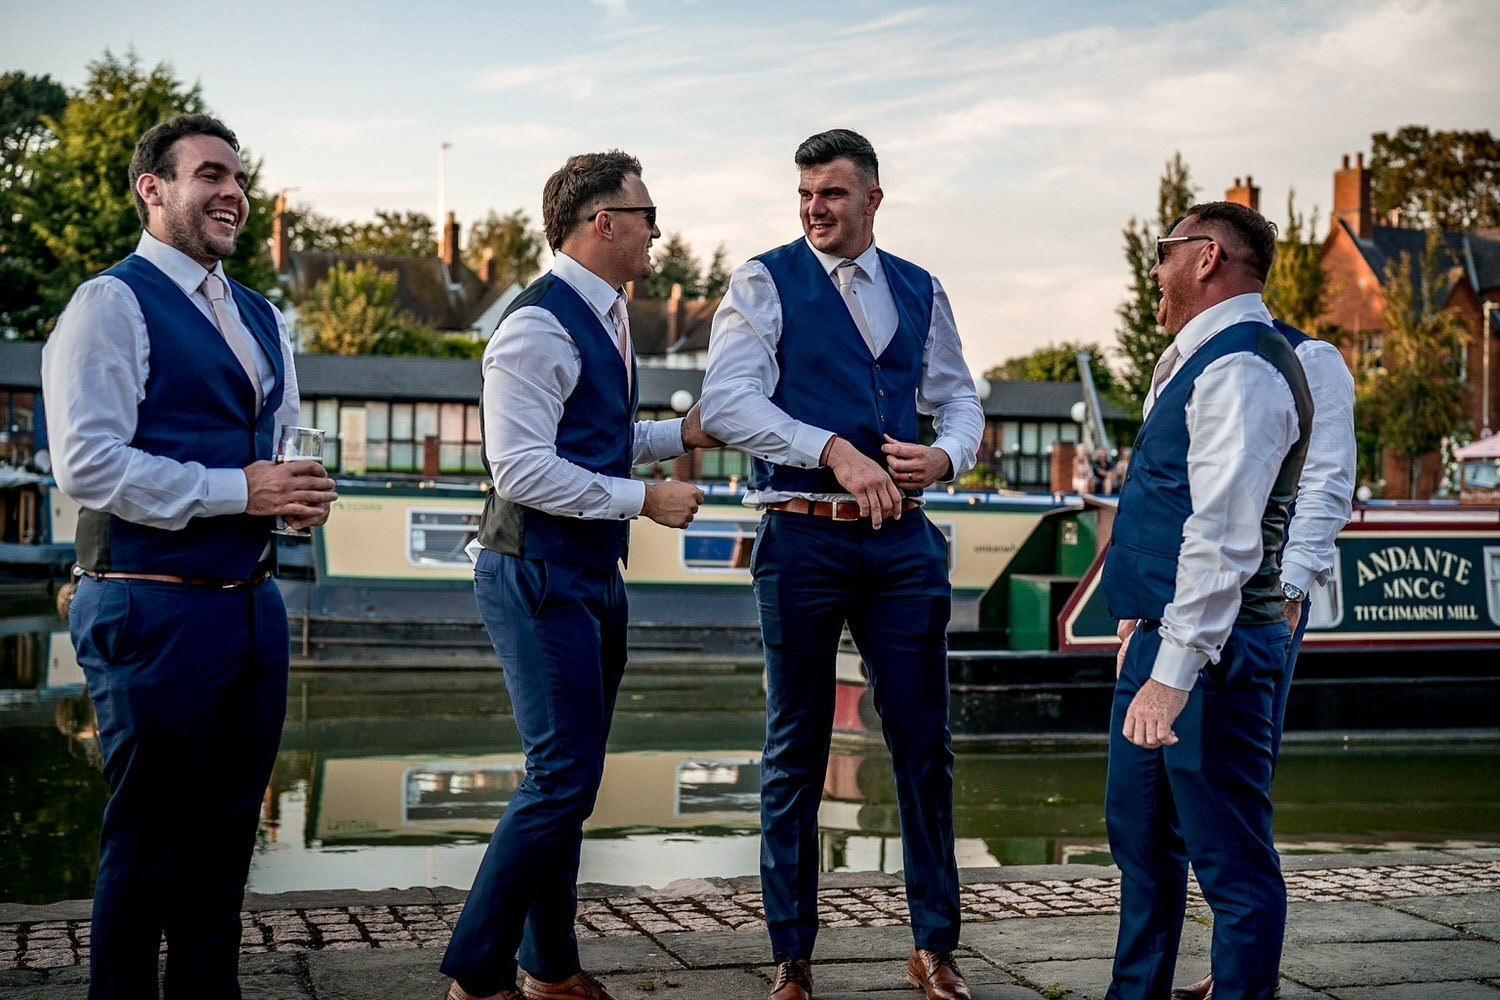 The Waterfront Market Harborough Weddings Photography groom and his ushers on the tow path with the canal barges floating behind